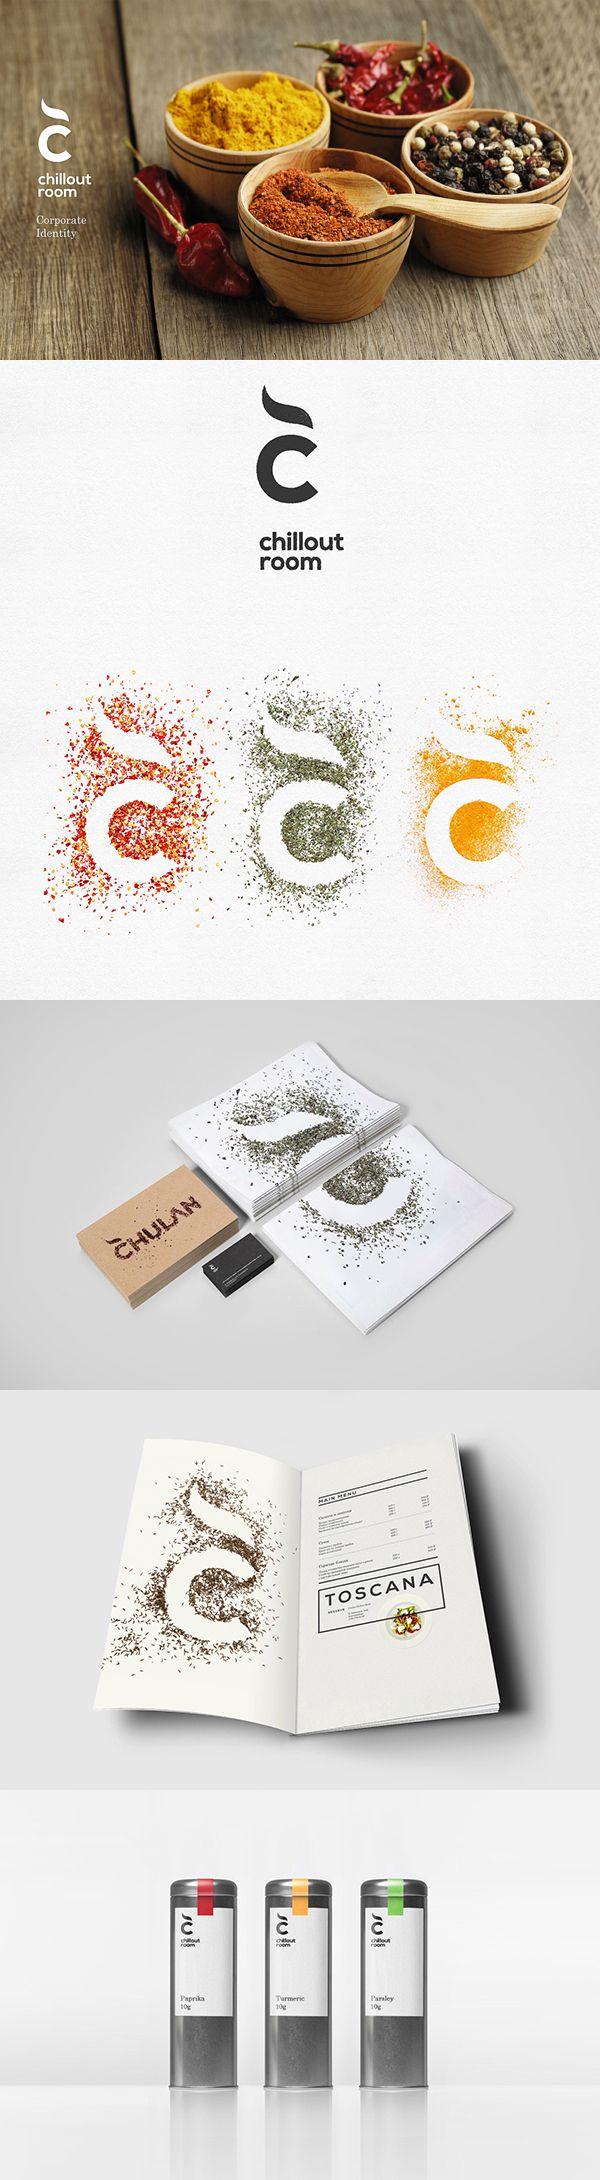 Chillout room spices #identity #packaging PD